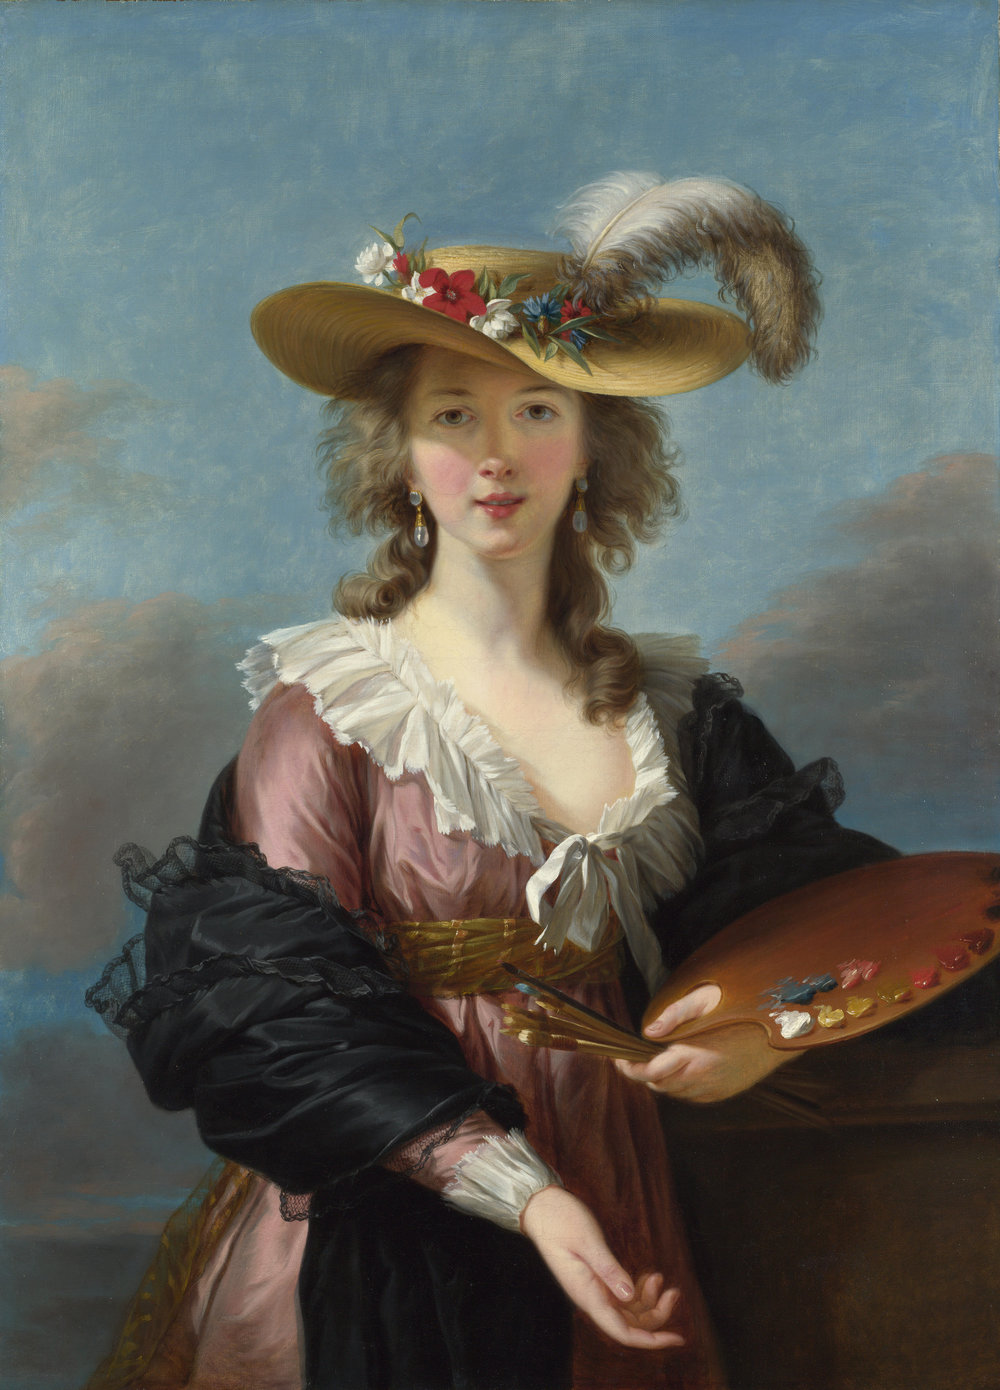 Elisabeth Vigée Lebrun, Self-Portrait, after 1782, oil on canvas, National Gallery, London